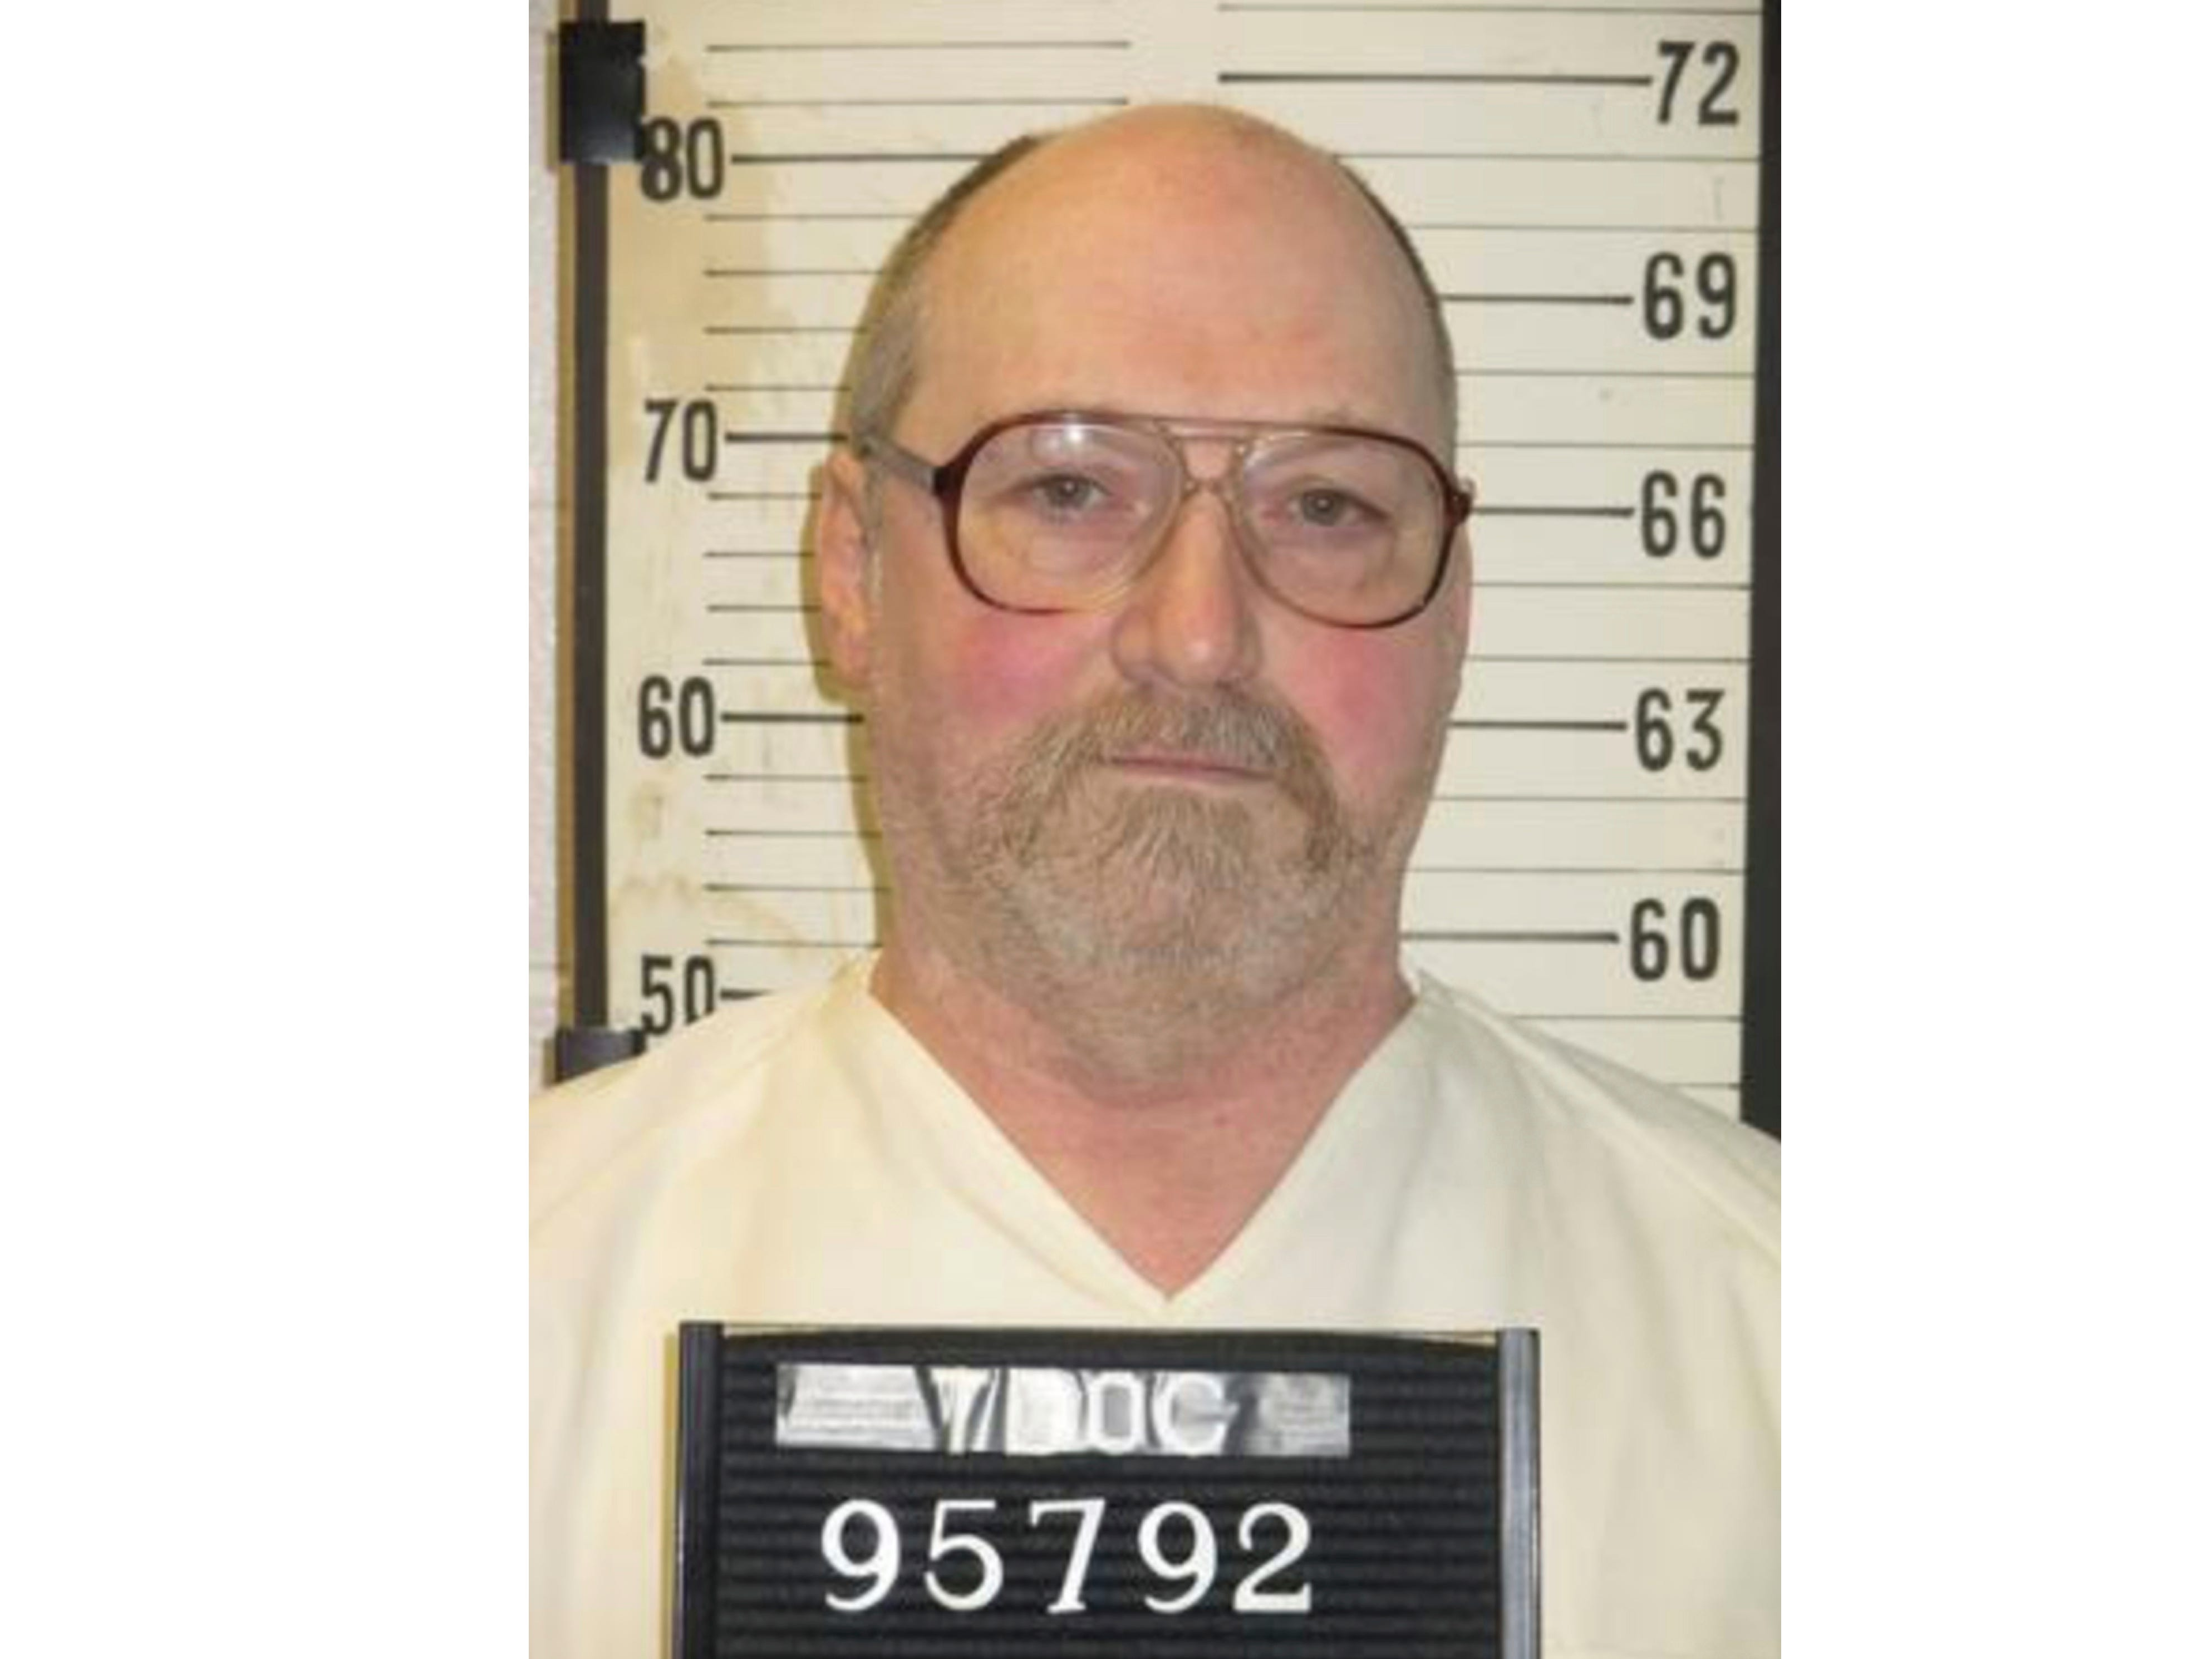 FILE - This undated file photo provided by the Tennessee Department of Correction shows inmate David Earl Miller in Nashville, Tenn. Tennessee death row inmate Miller faces a Tuesday afternoon, Nov. 20, 2018, deadline to inform prison officials whether he wants to be executed by lethal injection or electrocution. Miller is scheduled to die on Dec. 6 for the 1981 murder of 23-year-old Lee Standifer in Knoxville. (Tennessee Department of Correction via AP, File)